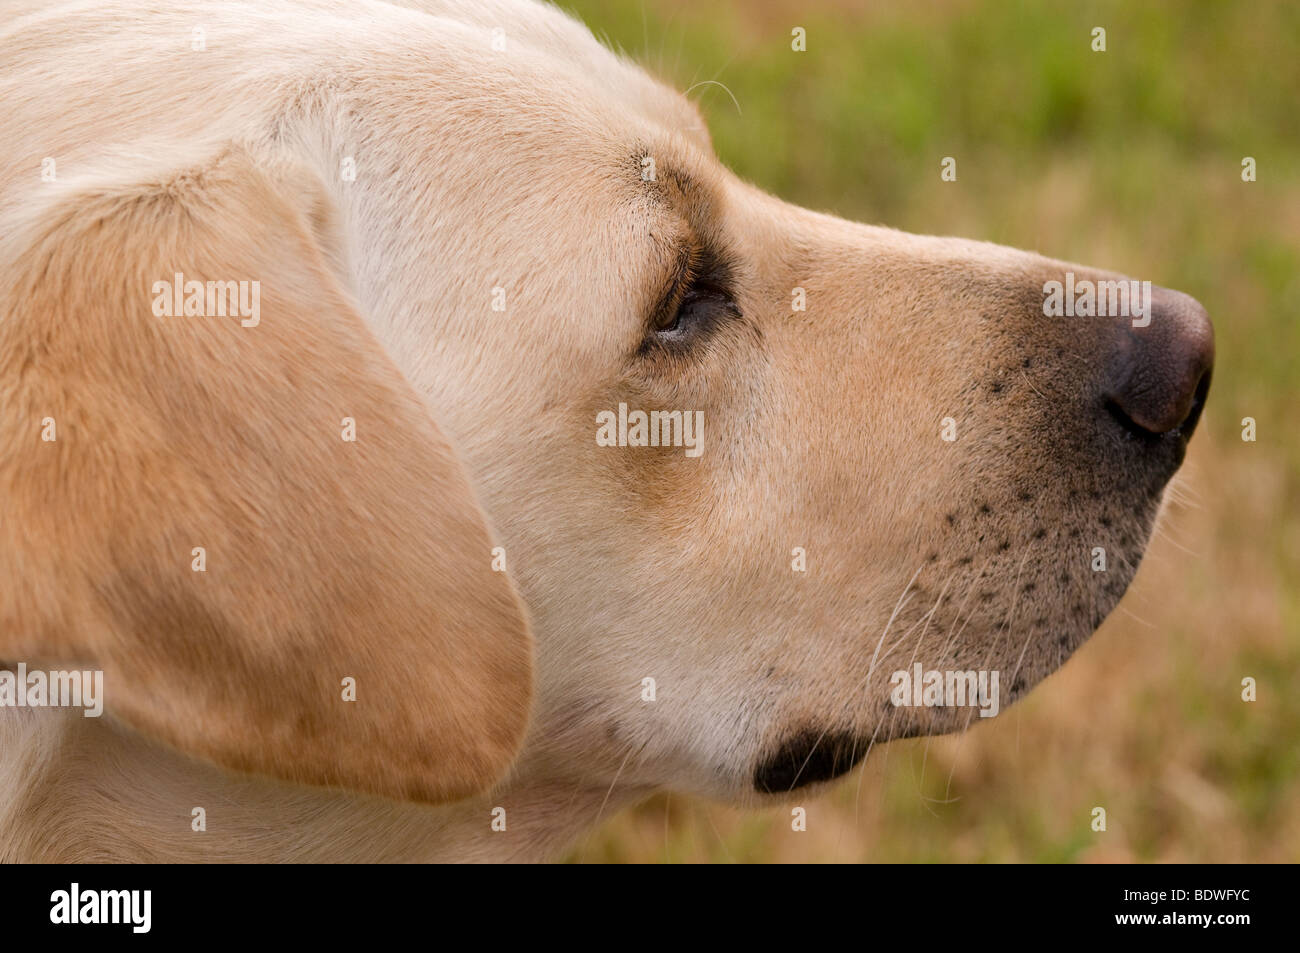 Close-up head shot of a yellow Labrador dog - Stock Image